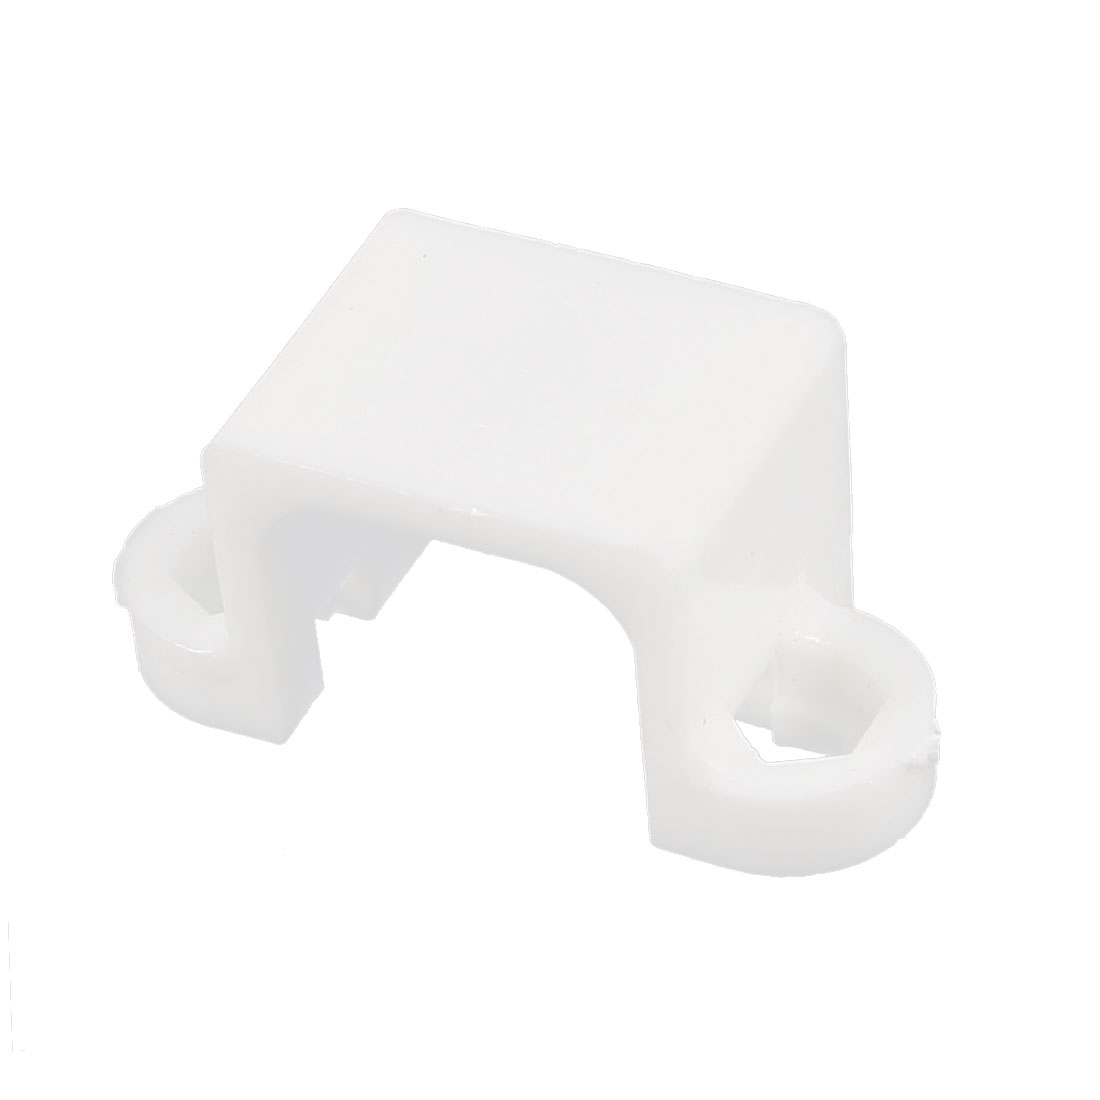 RC Toy N20 White Plastic Micro Reduction Gear Box Motor Holder Fixed Bracket